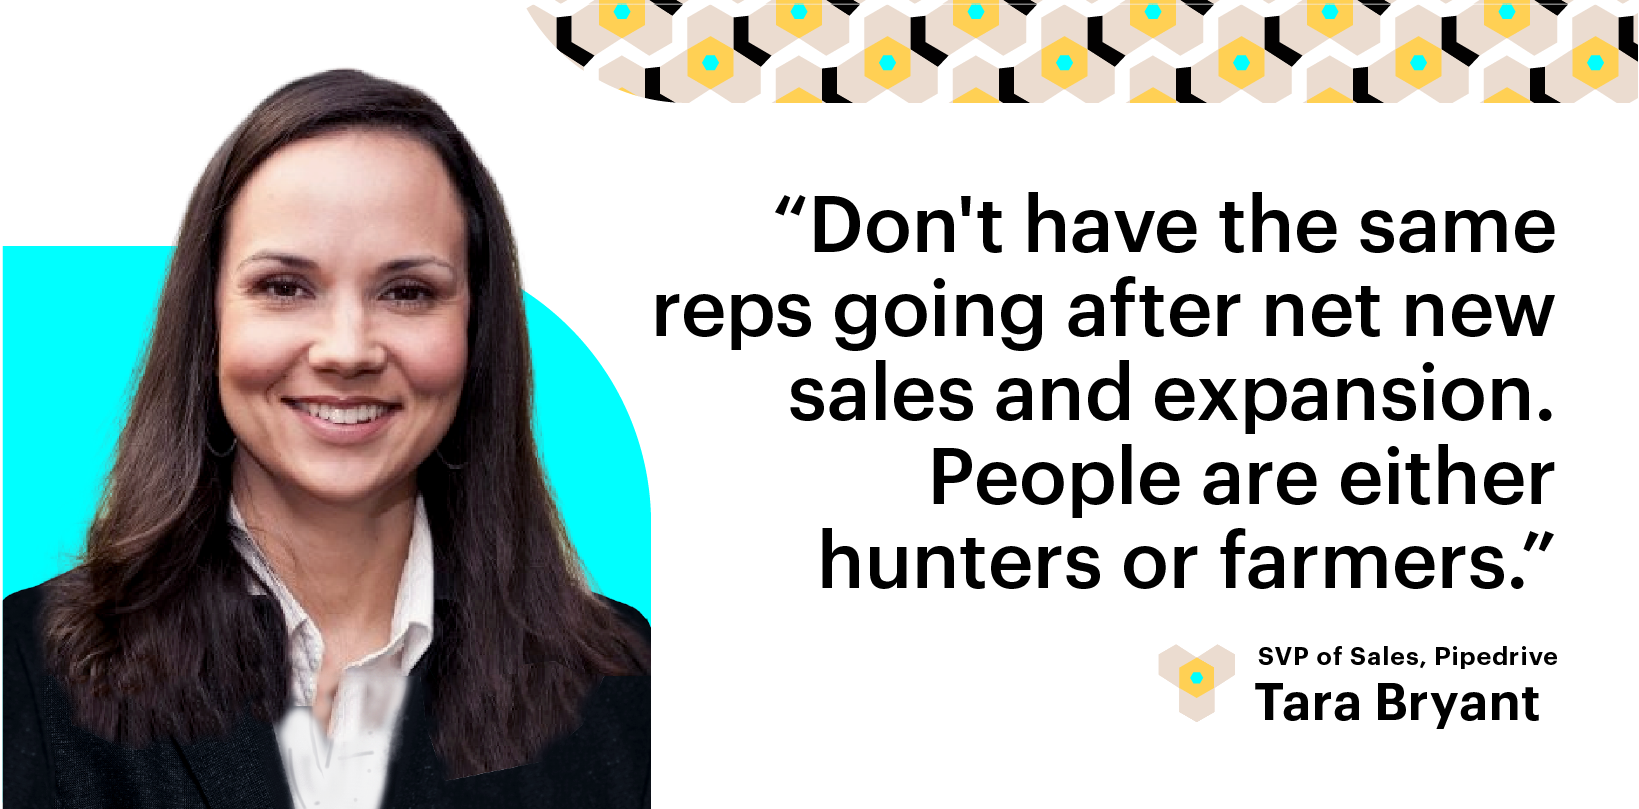 Scale Build Your Sales Team. Don't have the same reps going after net new sales and expansion. People are either Hunters or Farmers. Tara Bryant, Pipedrive